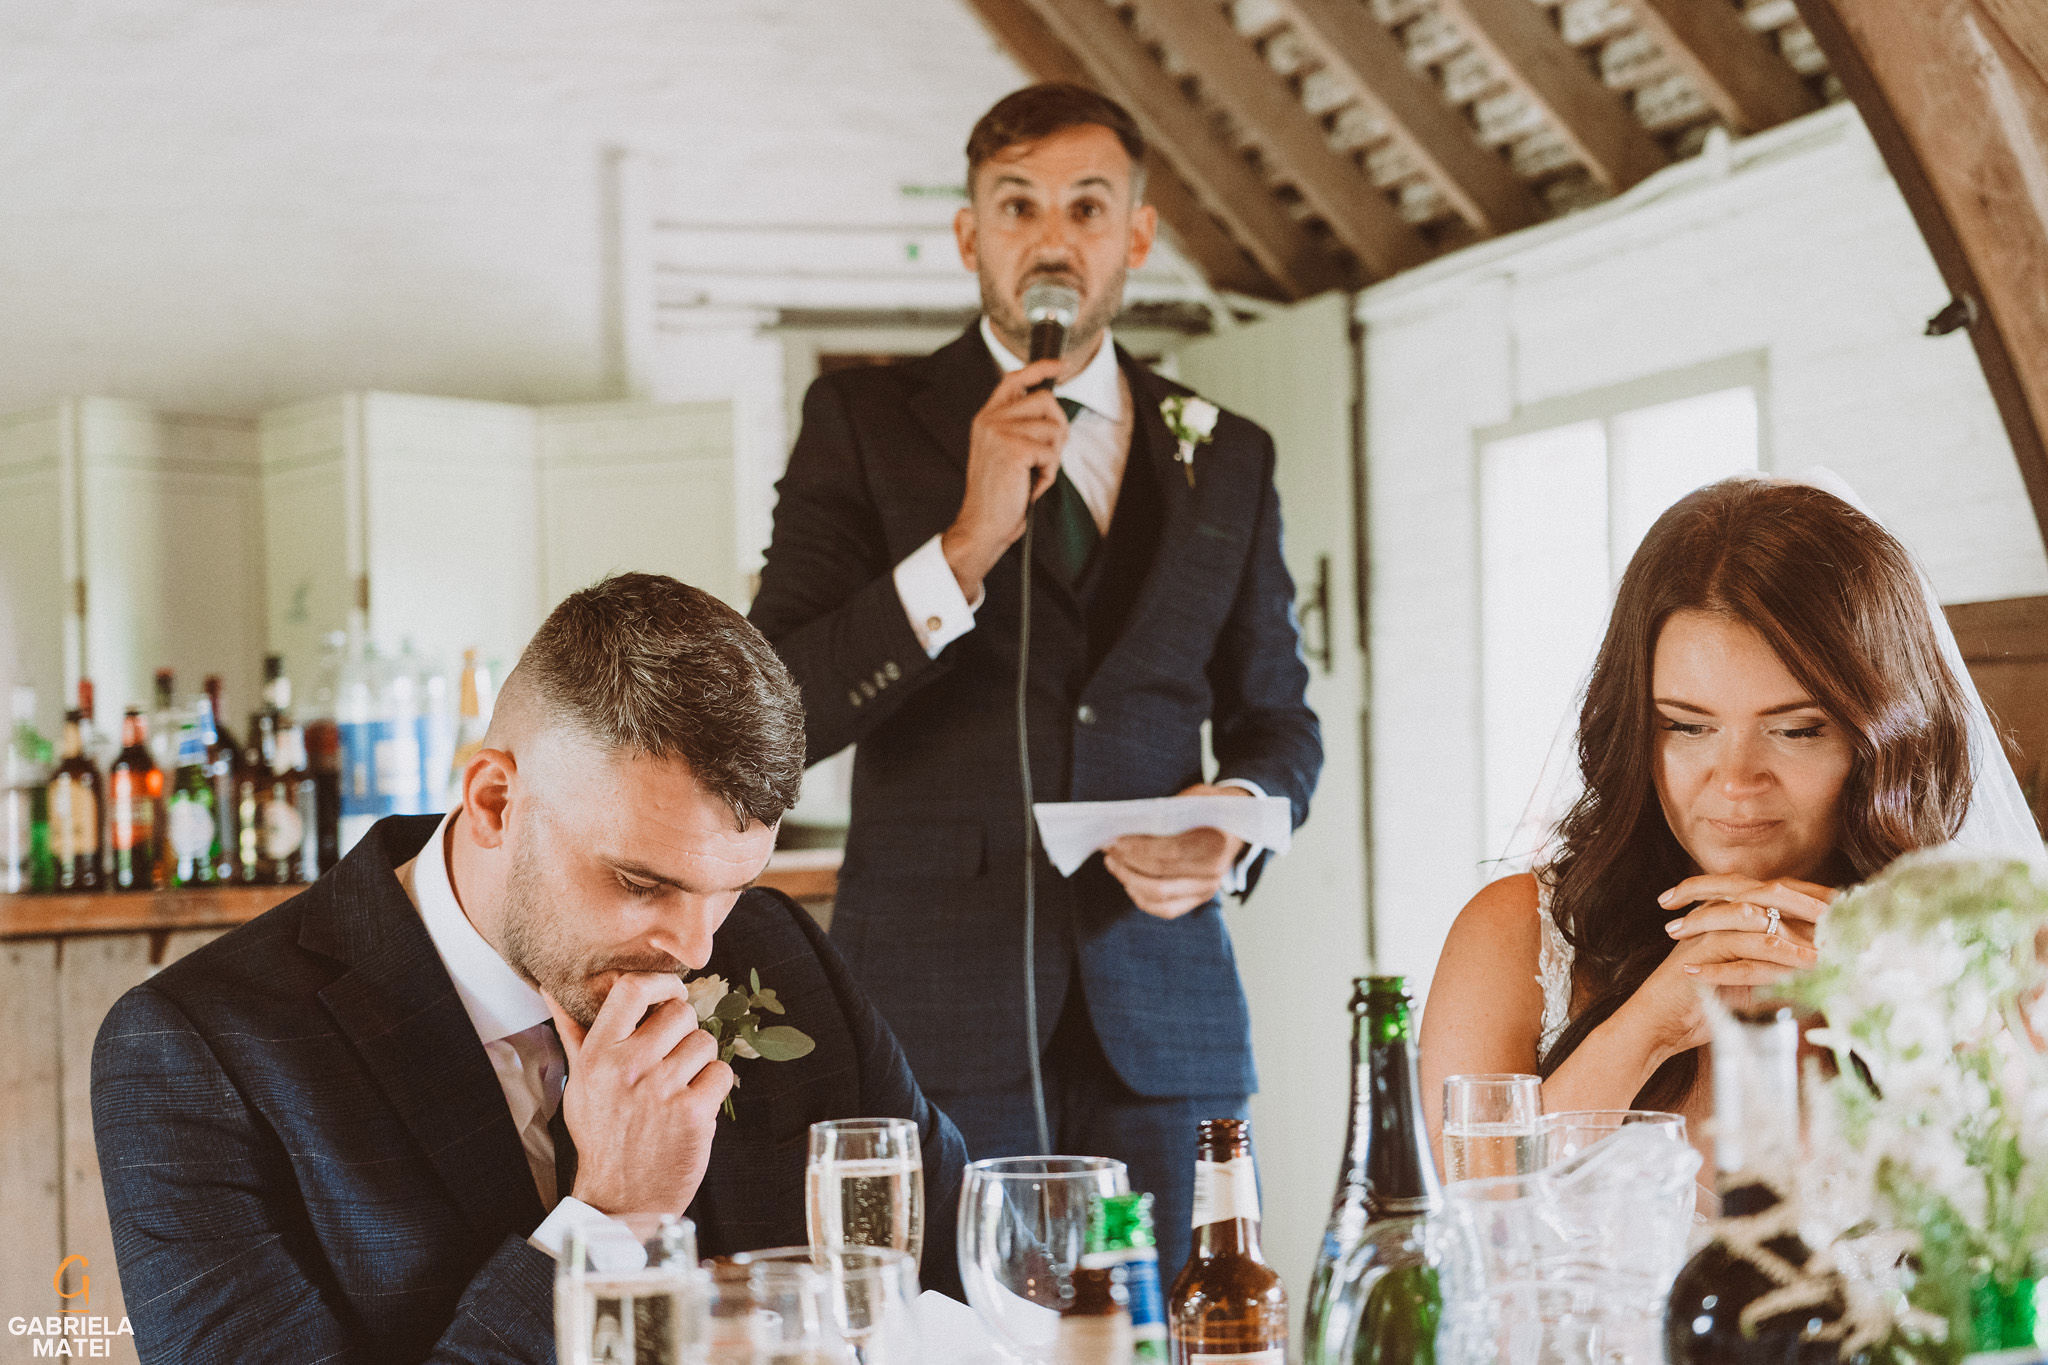 Wedding couple during wedding speeches at South Stoke Barn wedding venue in Arundel by gabriela matei sussex photographer